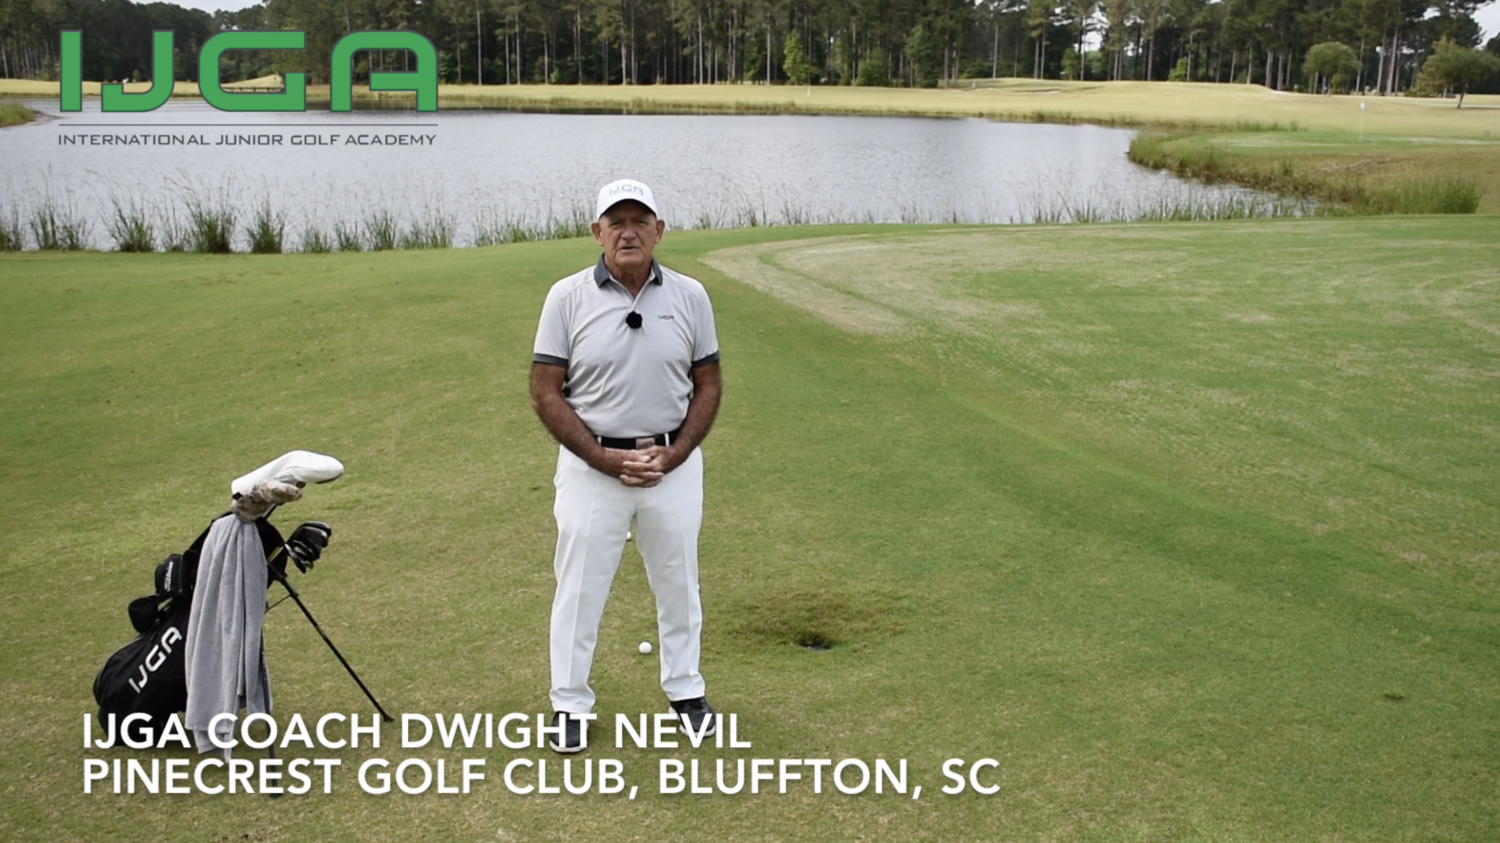 Shot Selection Around the Green with IJGA Coach Dwight Nevil